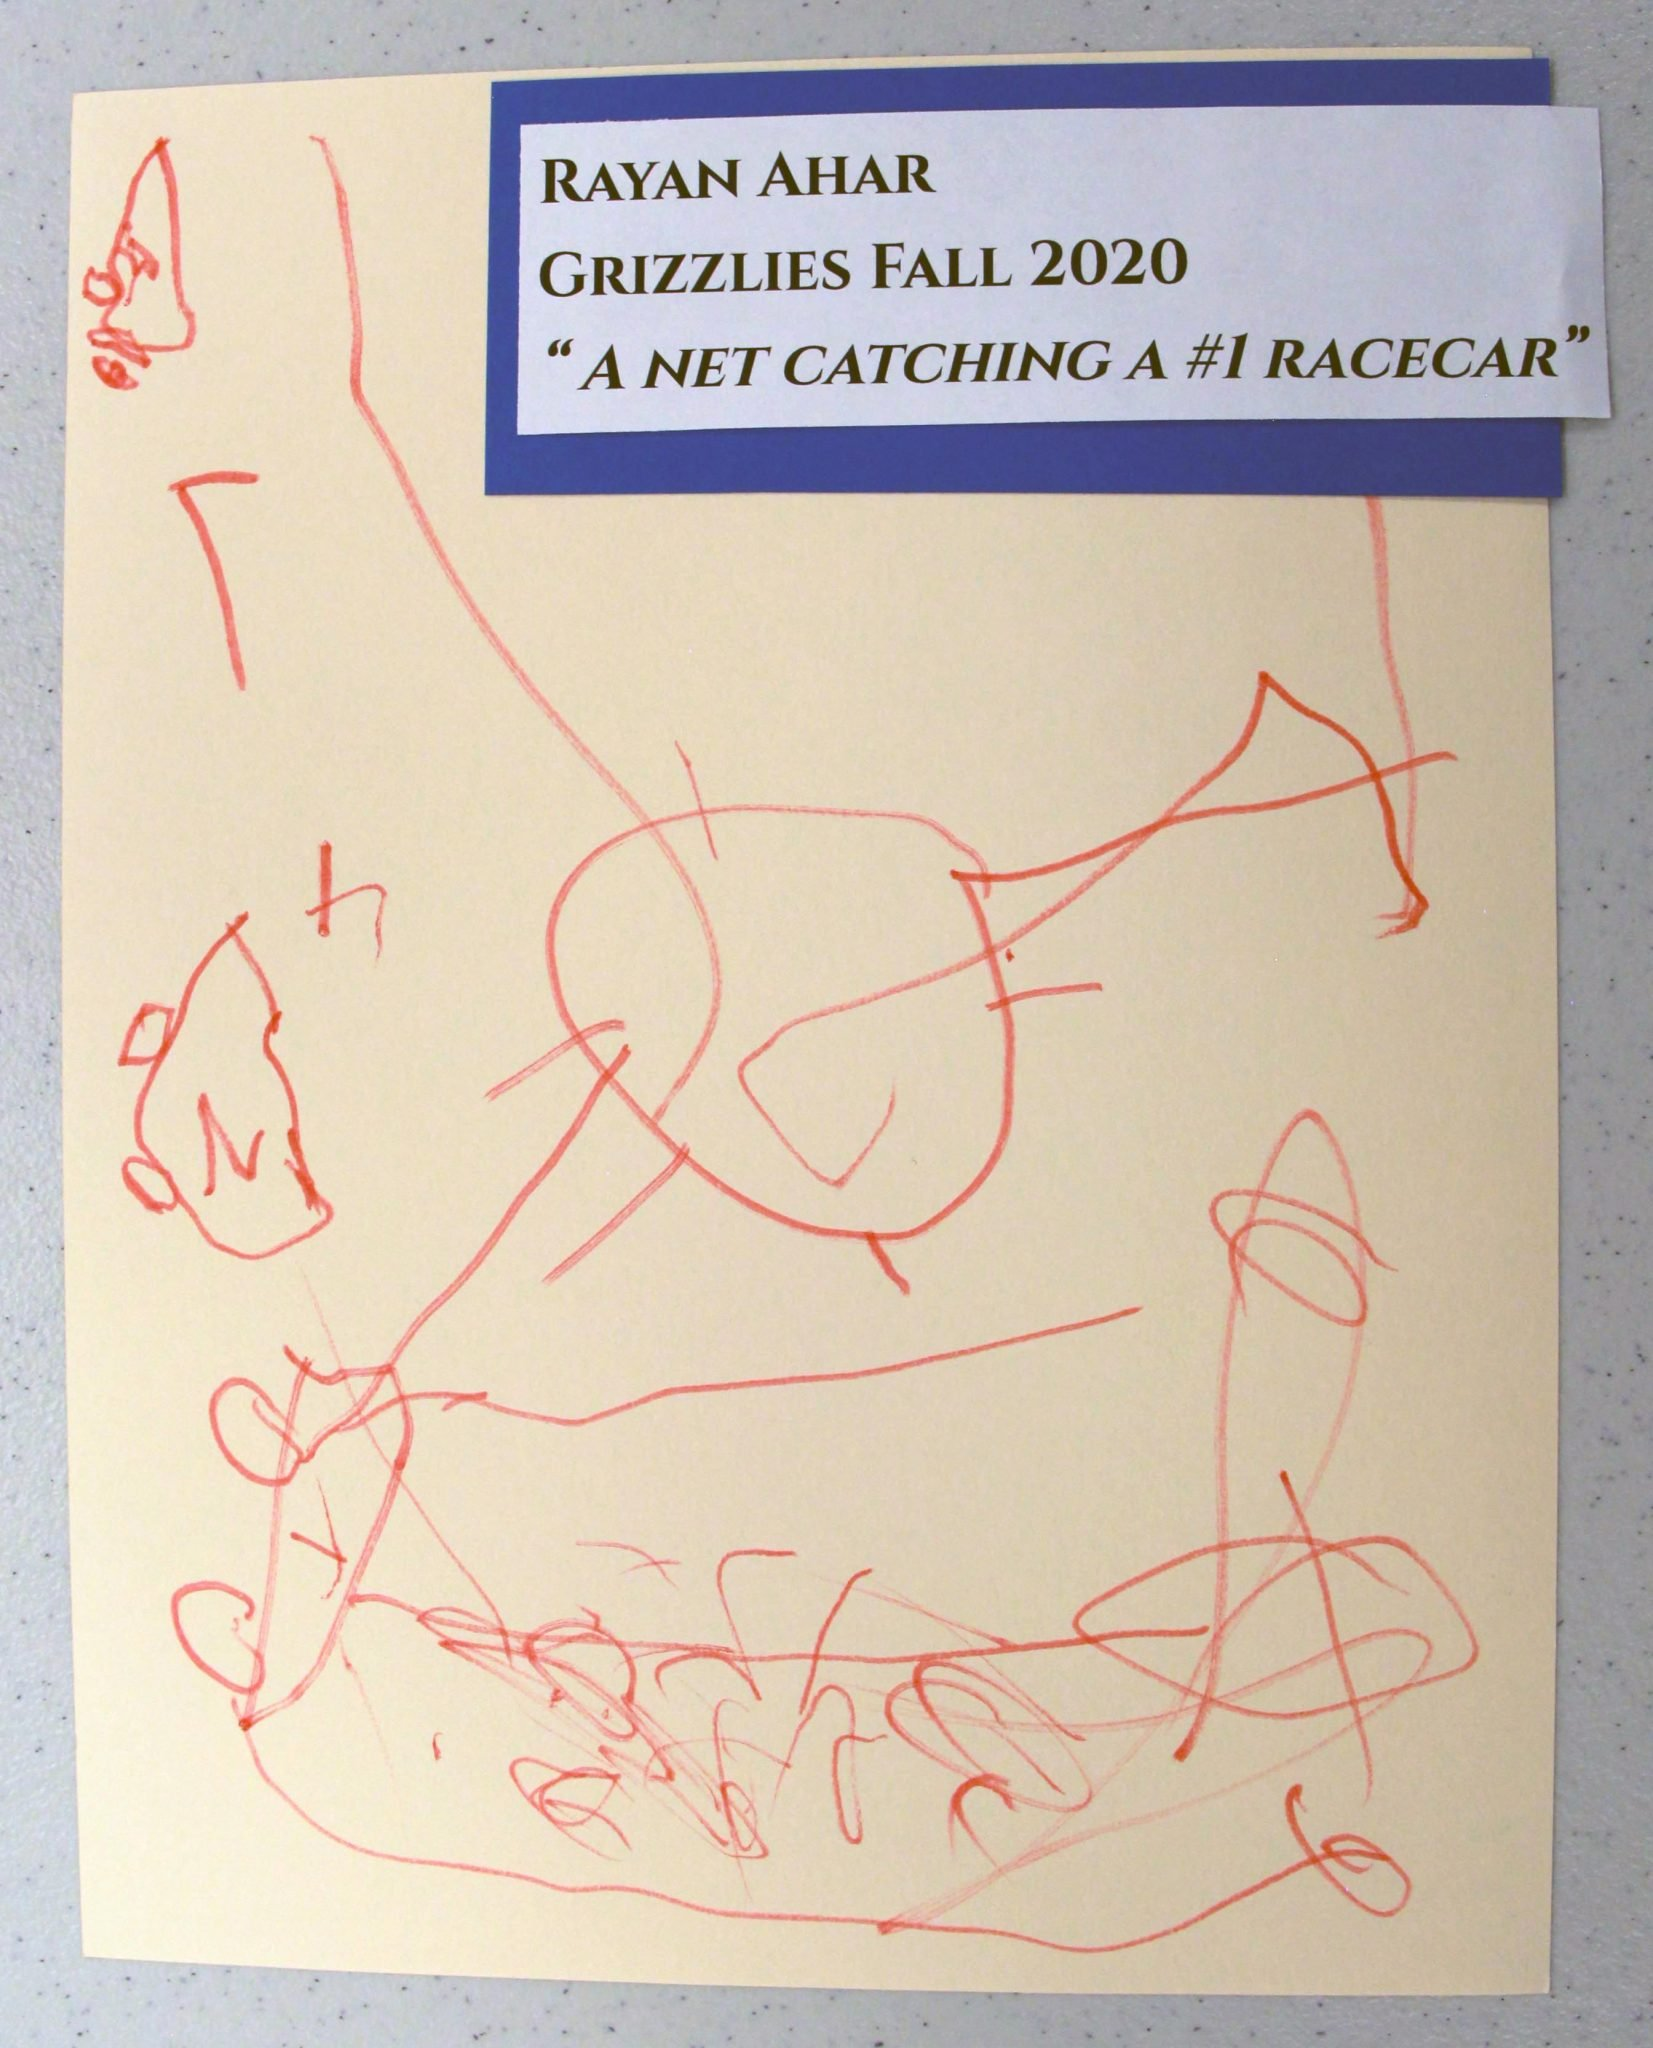 Rayan Ahar, of Grizzlies group, drawing, Fall 2020